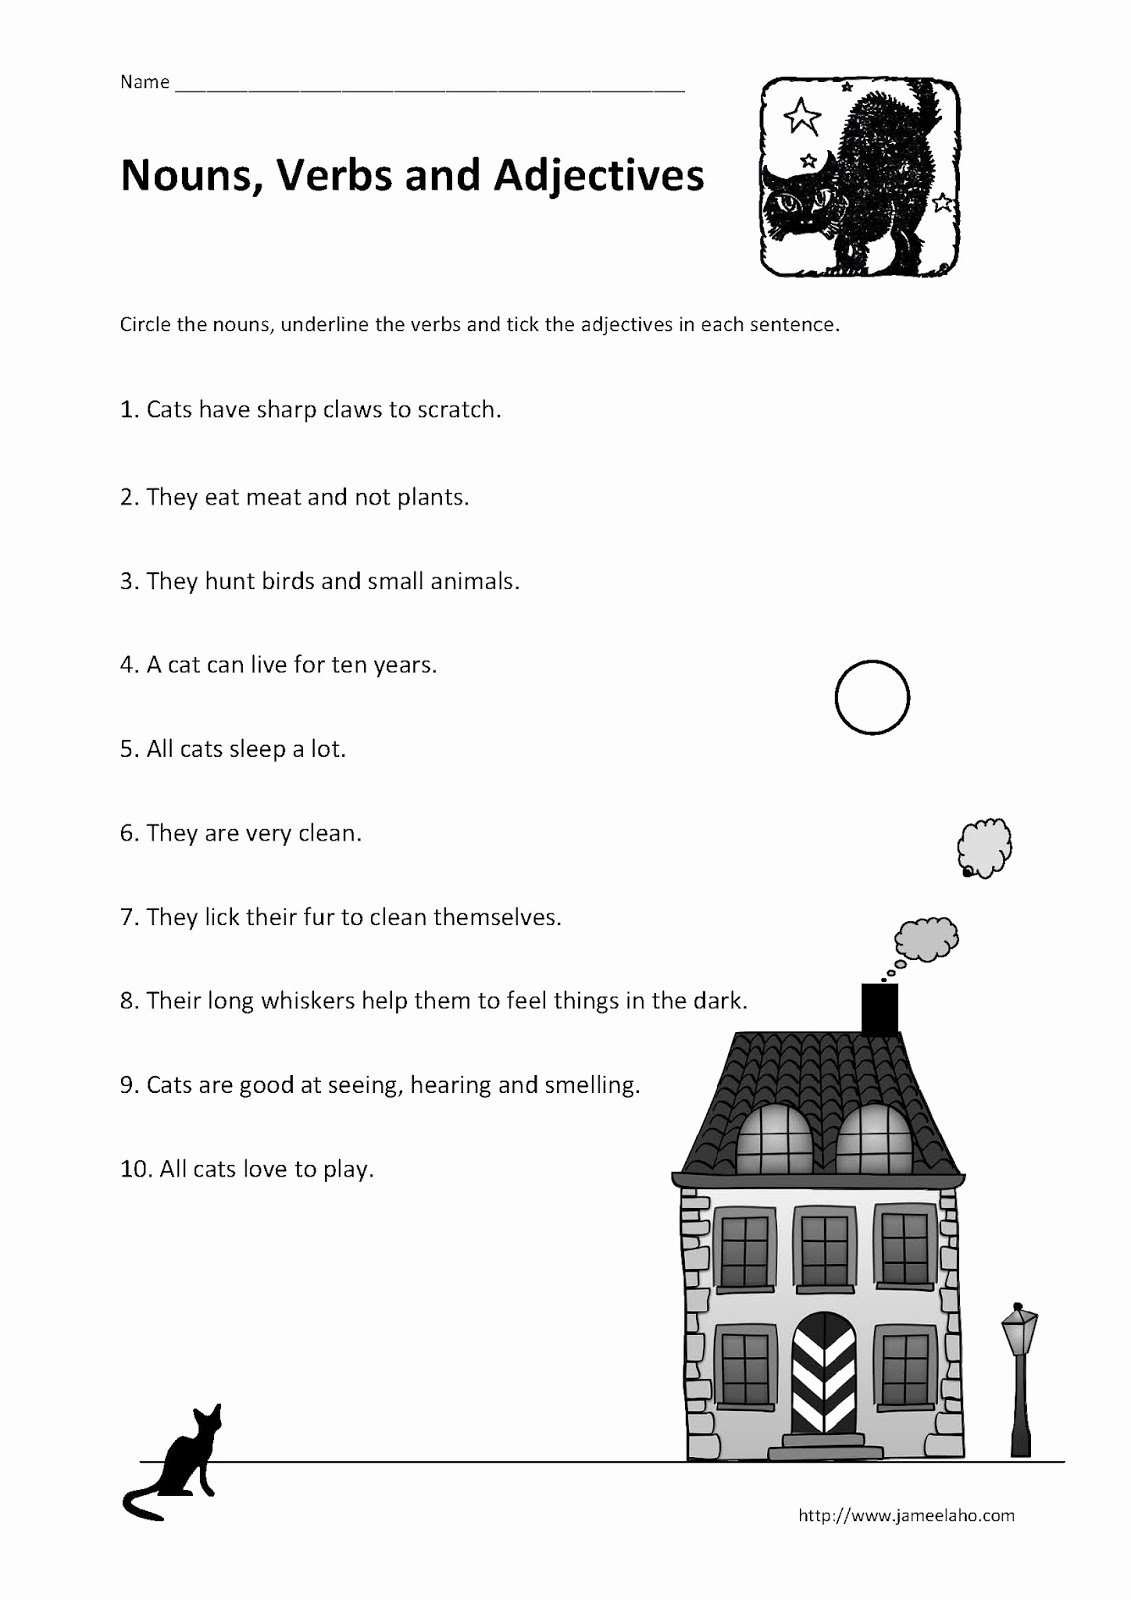 Nouns and Verbs Worksheet Elegant Teaching Simplified Identifying Nouns Verbs and